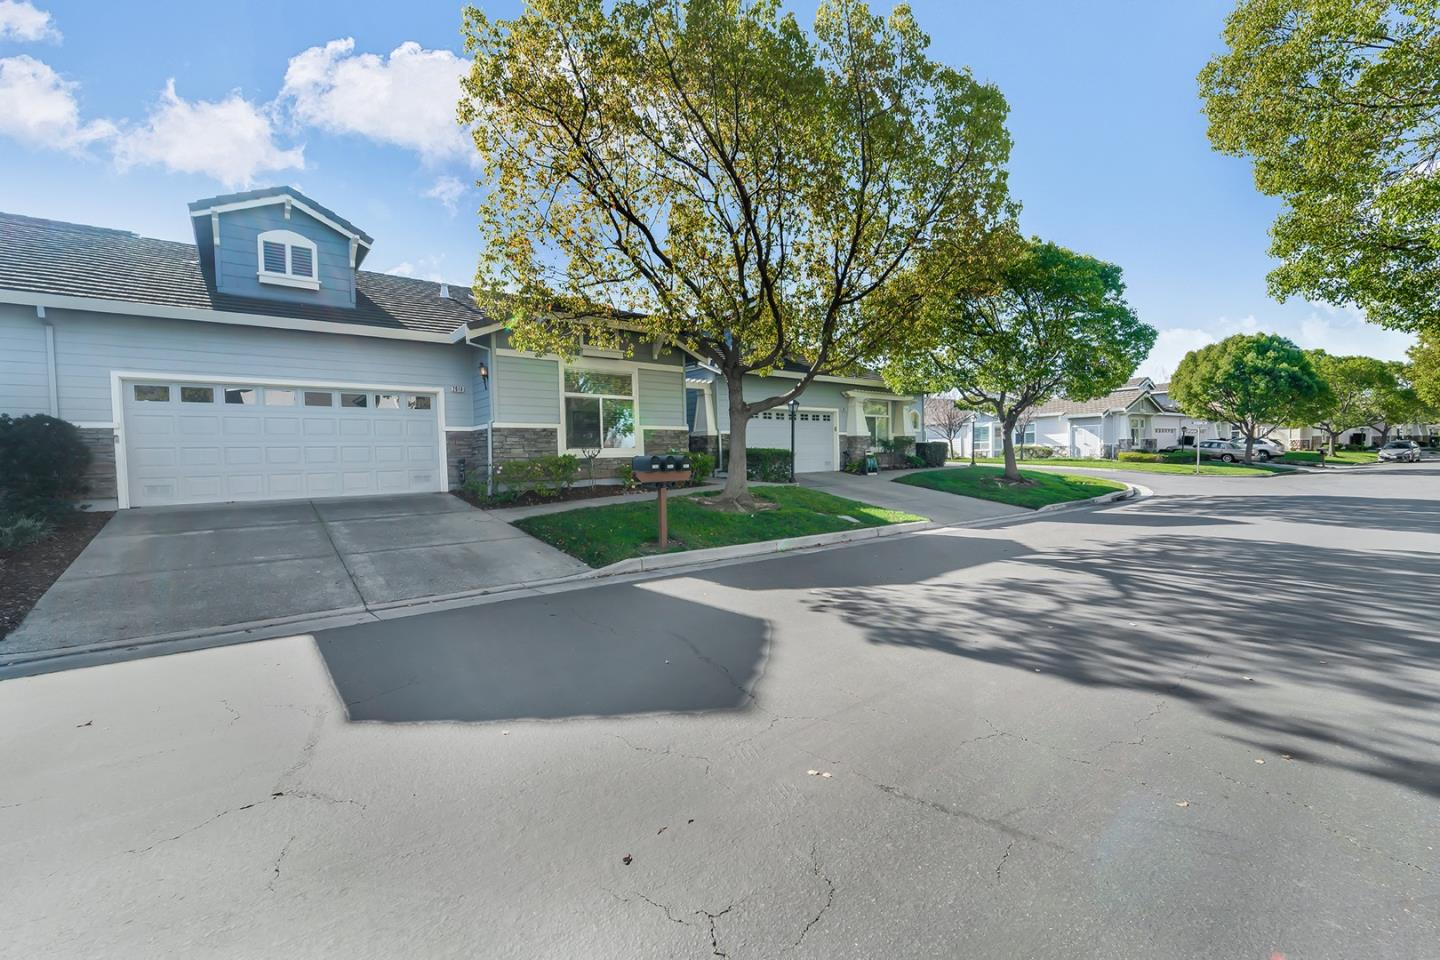 2010 Carignan WAY, Evergreen in Santa Clara County, CA 95135 Home for Sale